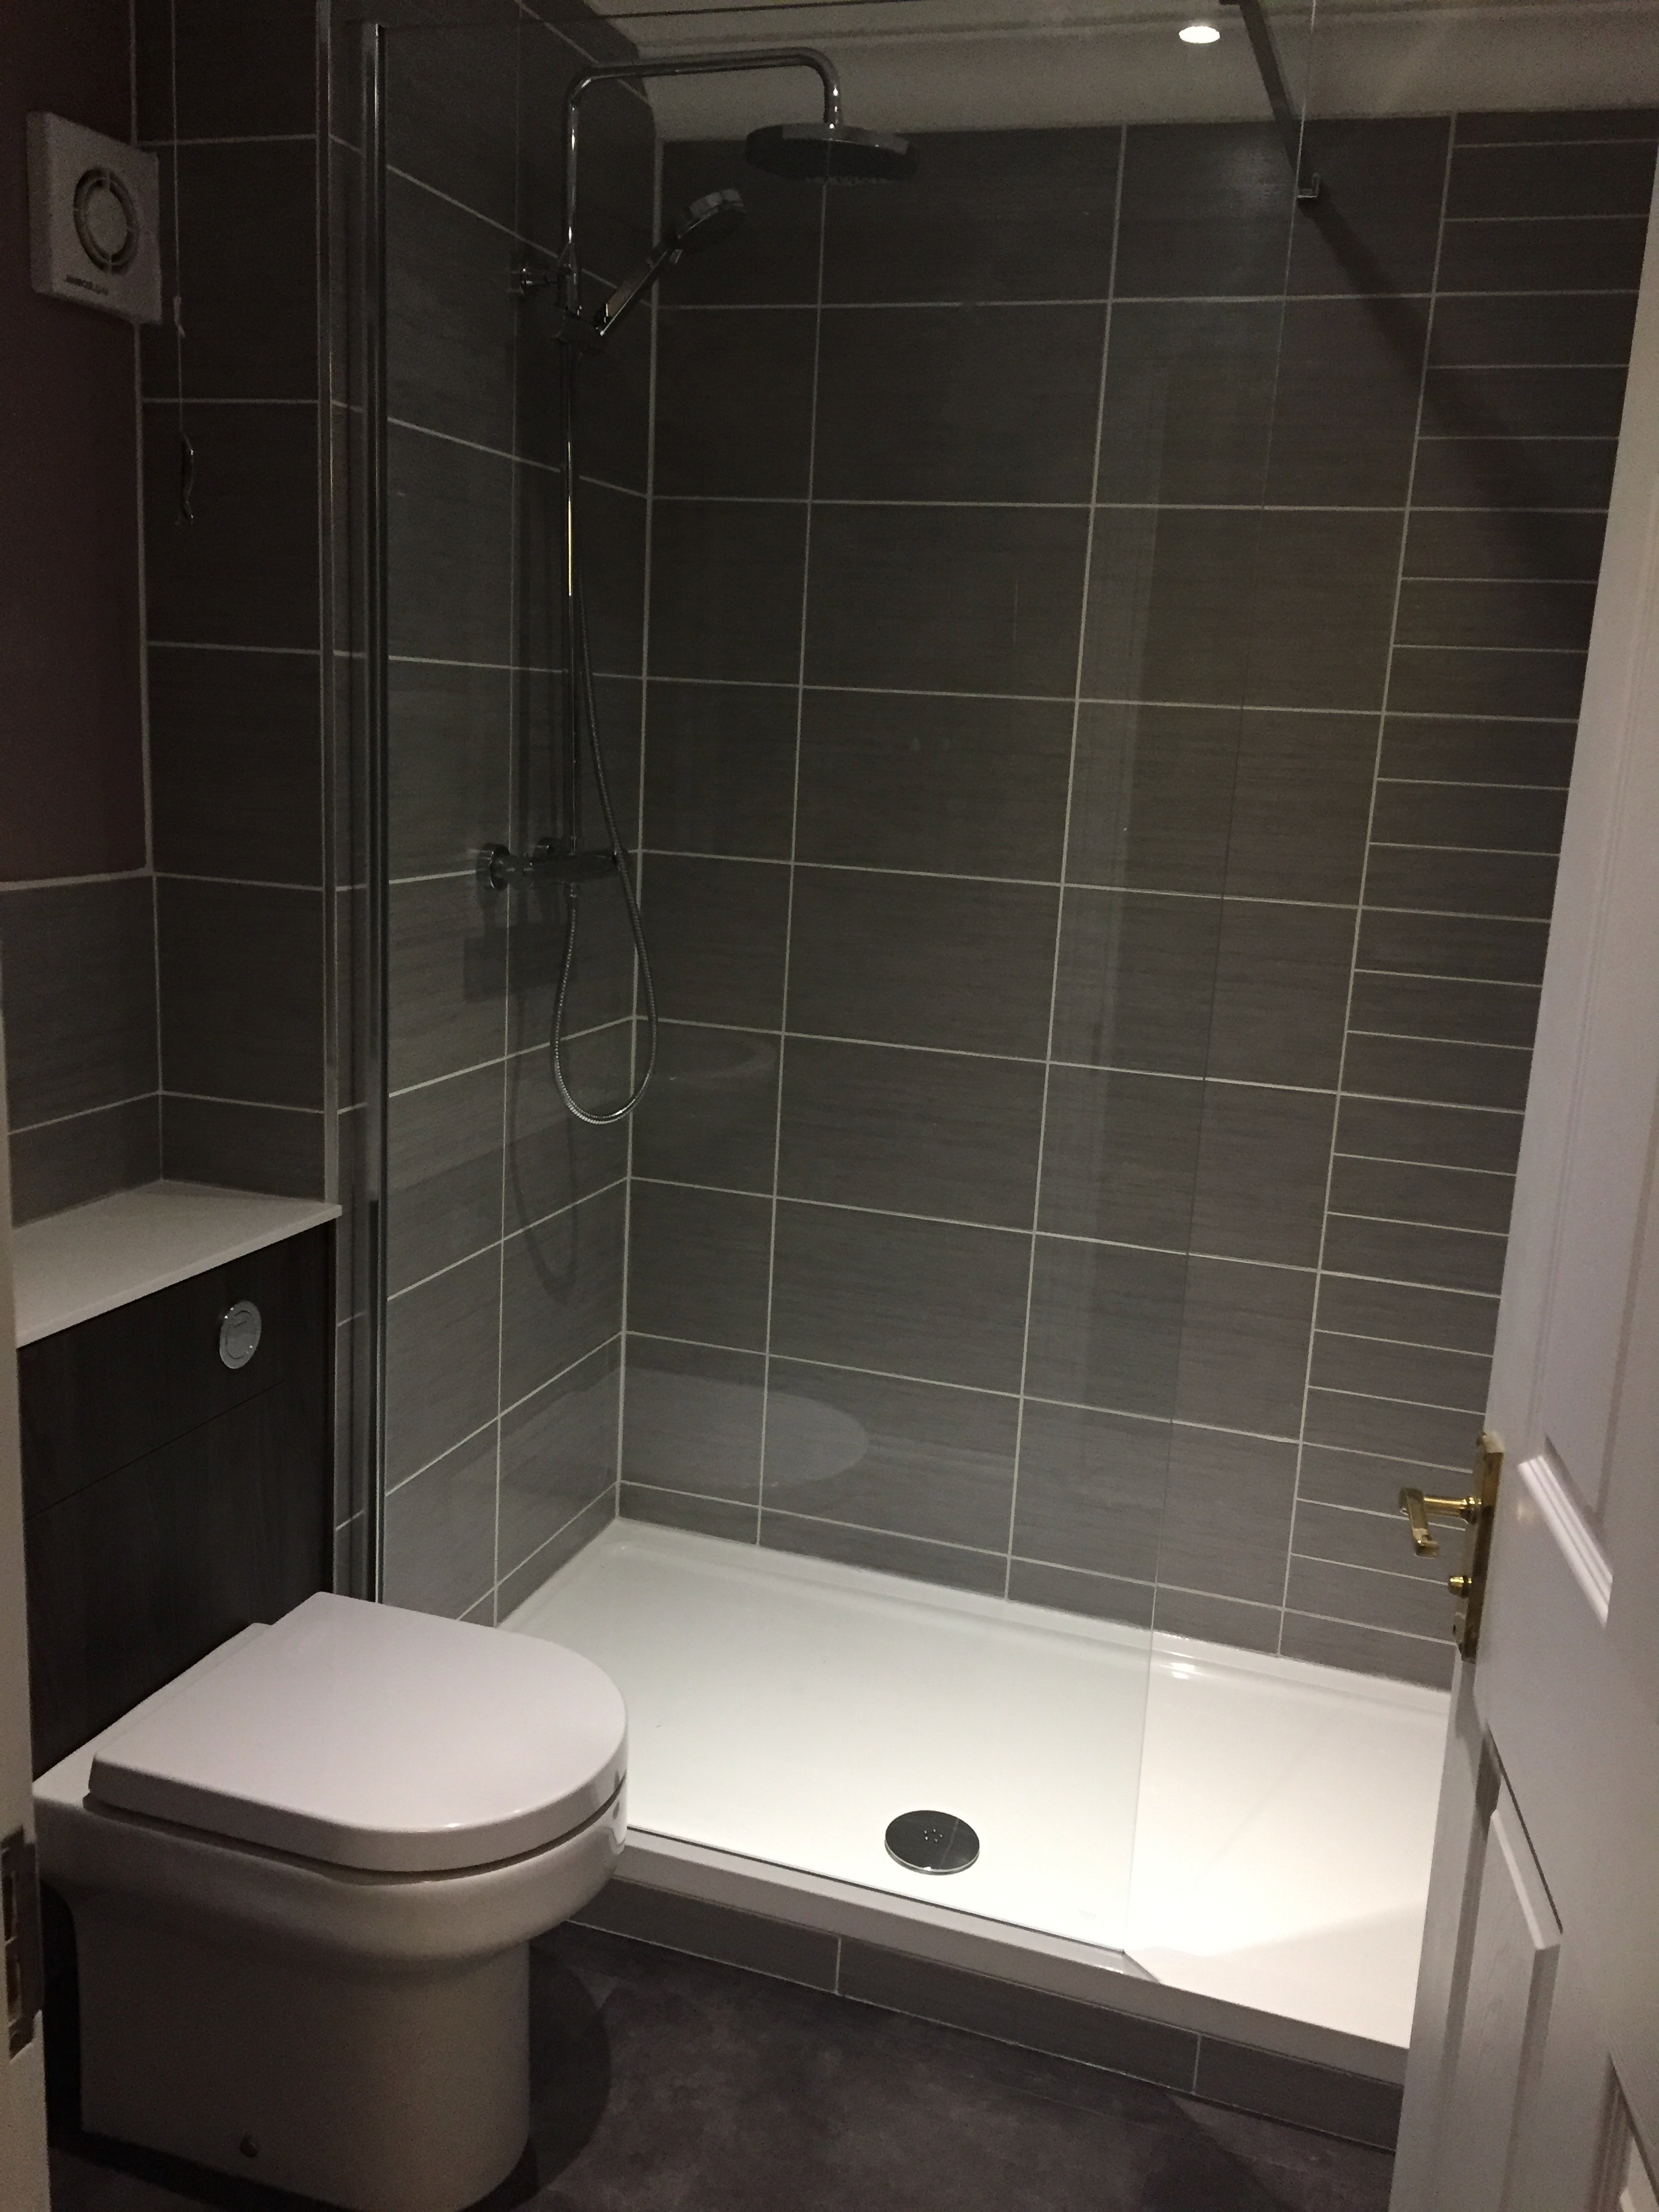 Ensuite shower room refit